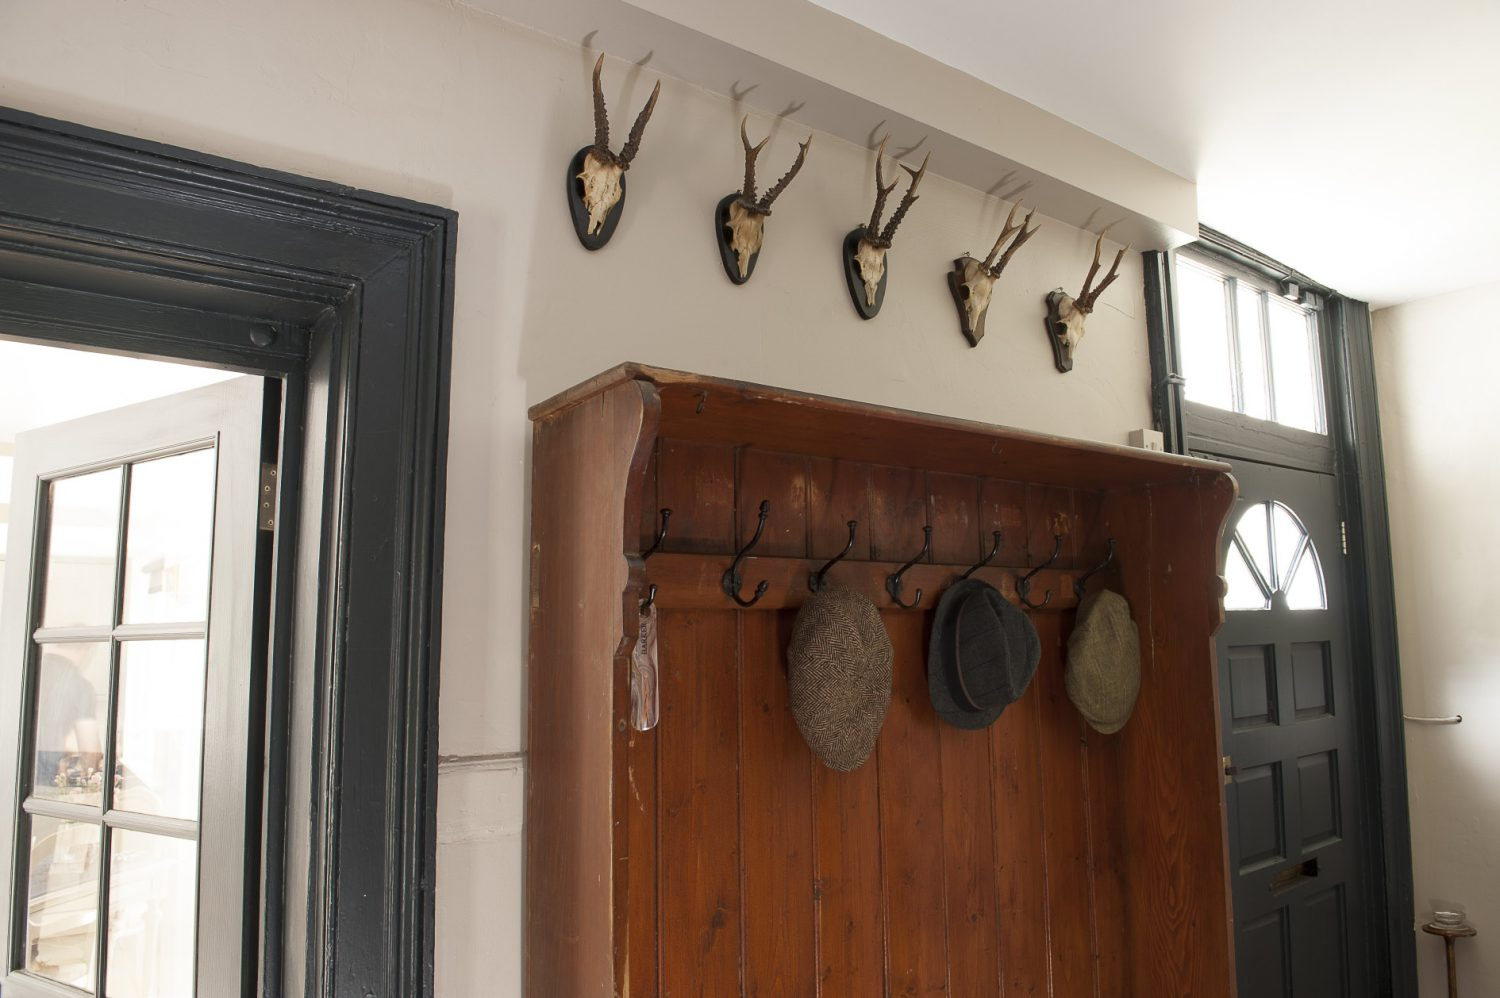 A collection of tweed flat caps adorn the pegs in the rear hallway – ready and waiting for a walk in the surrounding countryside. The couple are happy to arrange guided walks for visitors